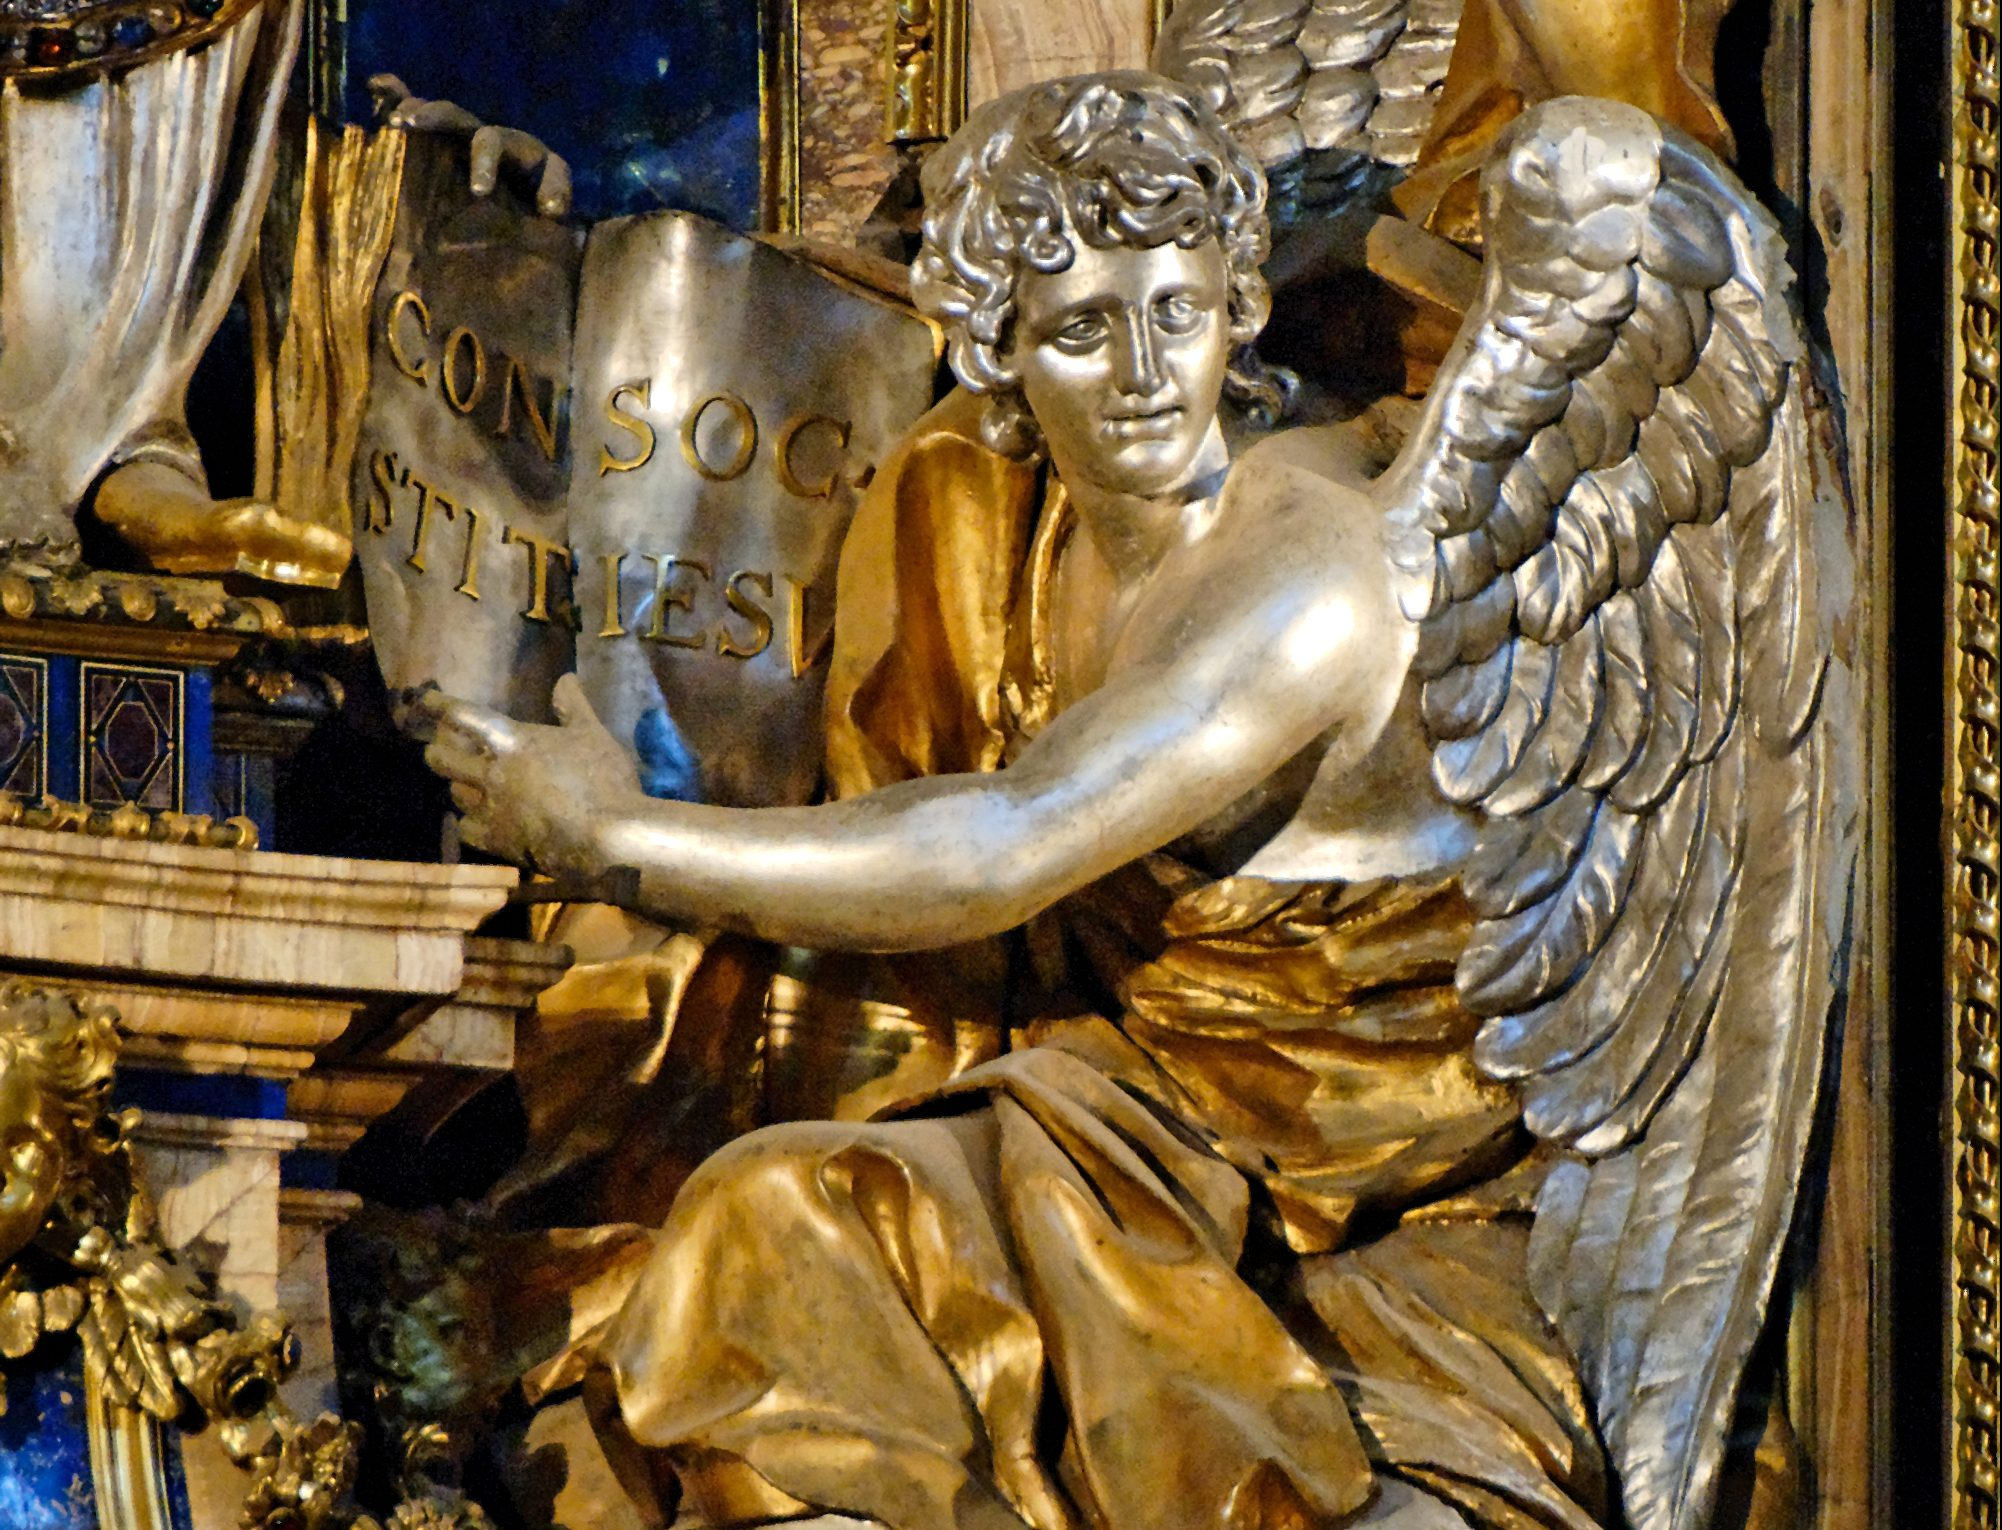 GESU CHURCH ANGEL AT THE FEET OF ST IGNATIUS